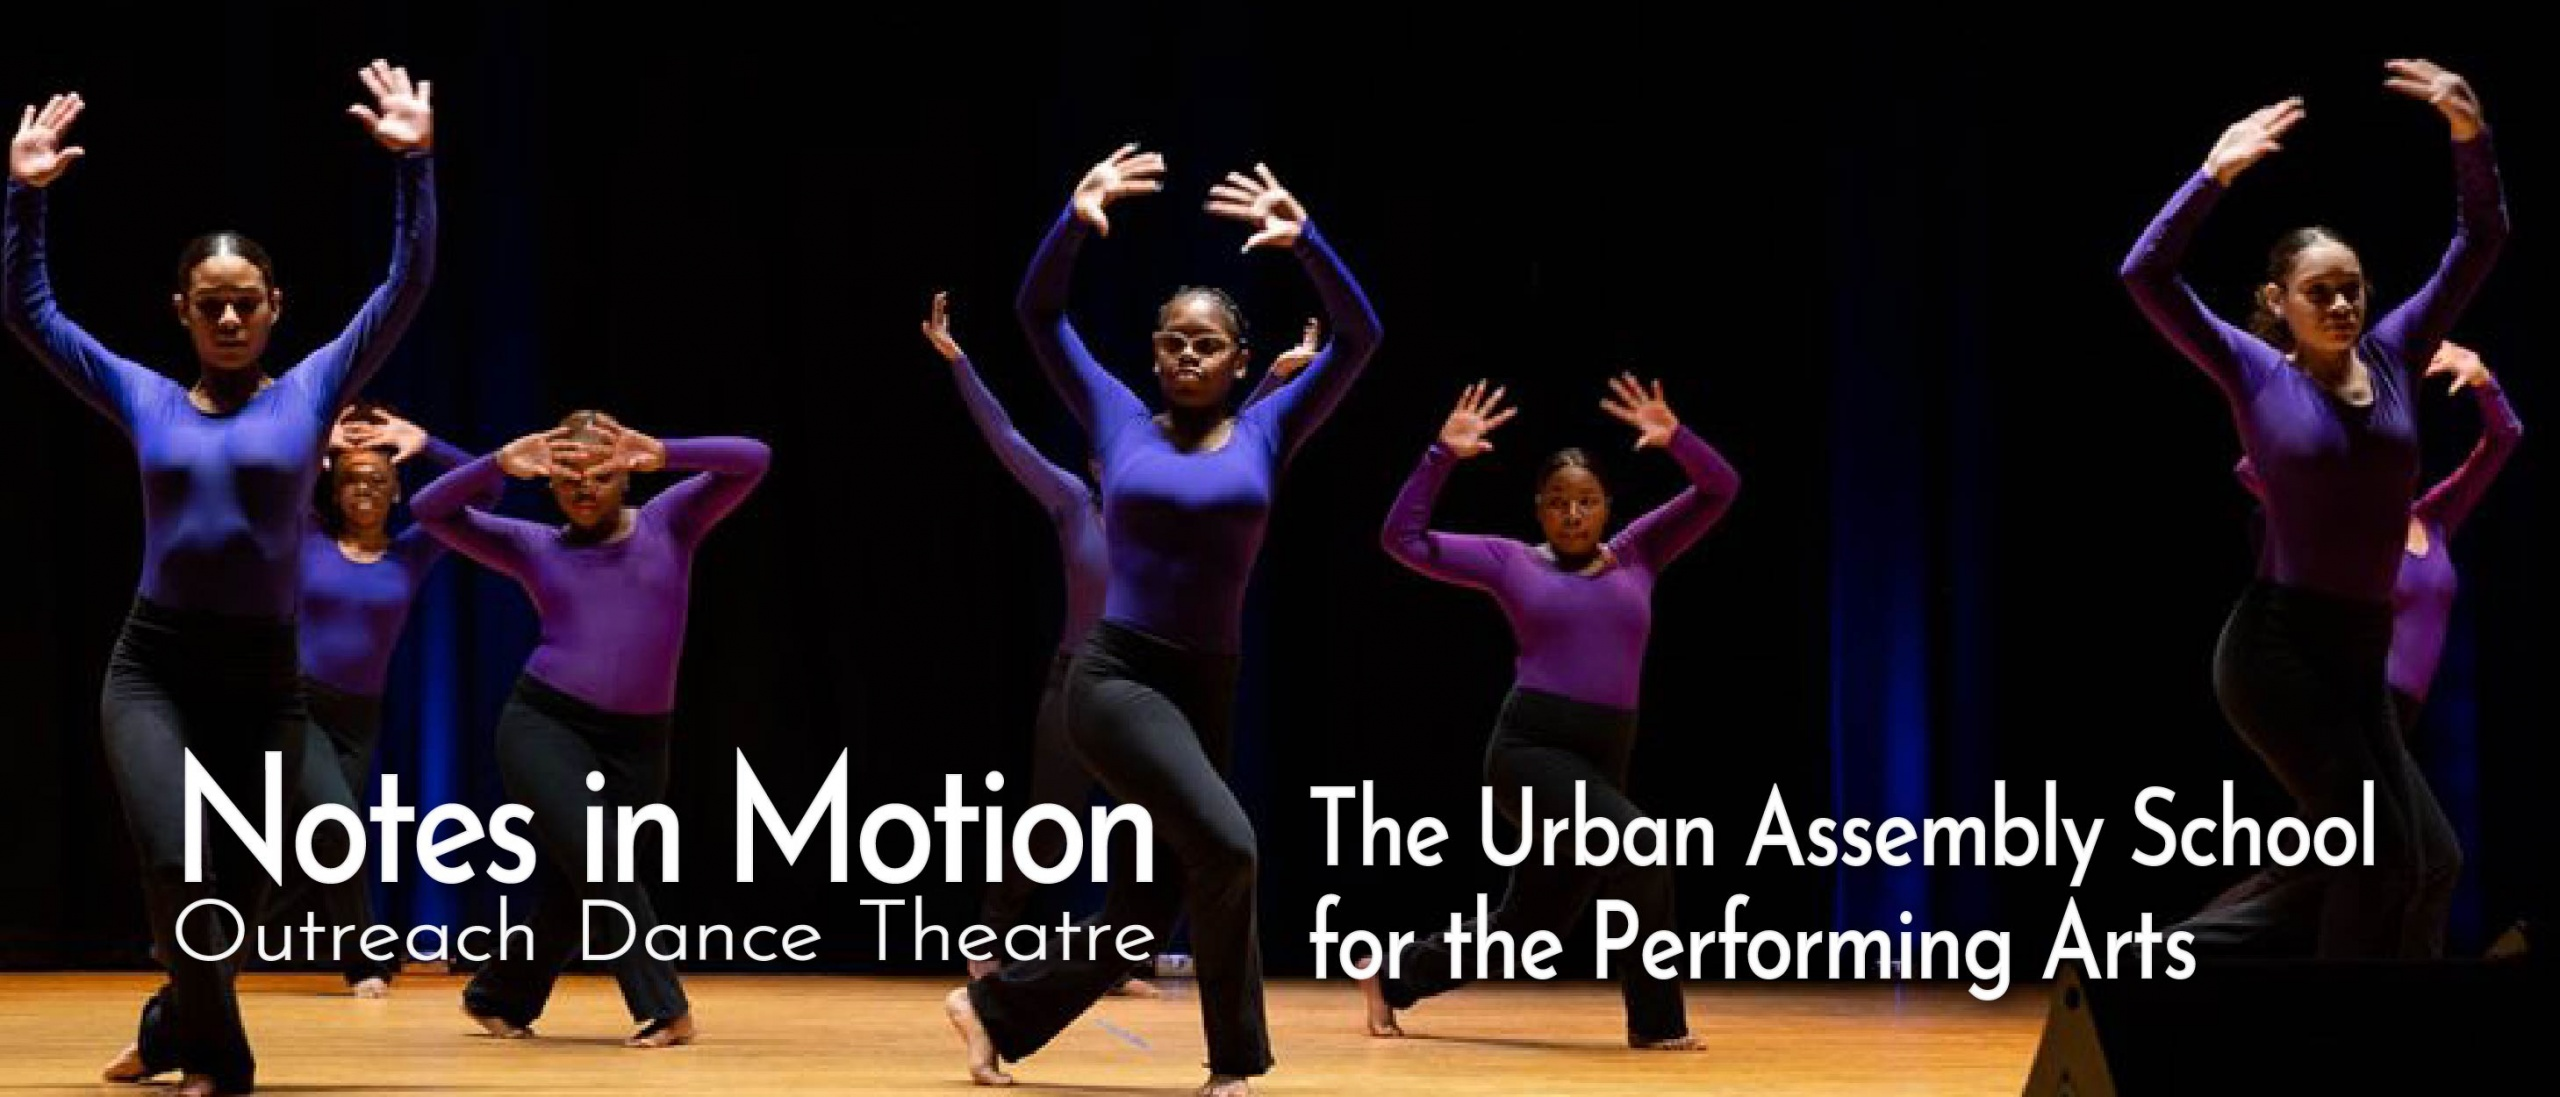 Students performing in a Jazz dance residency at Urban Assembly School for the Performing Arts, Manhattan